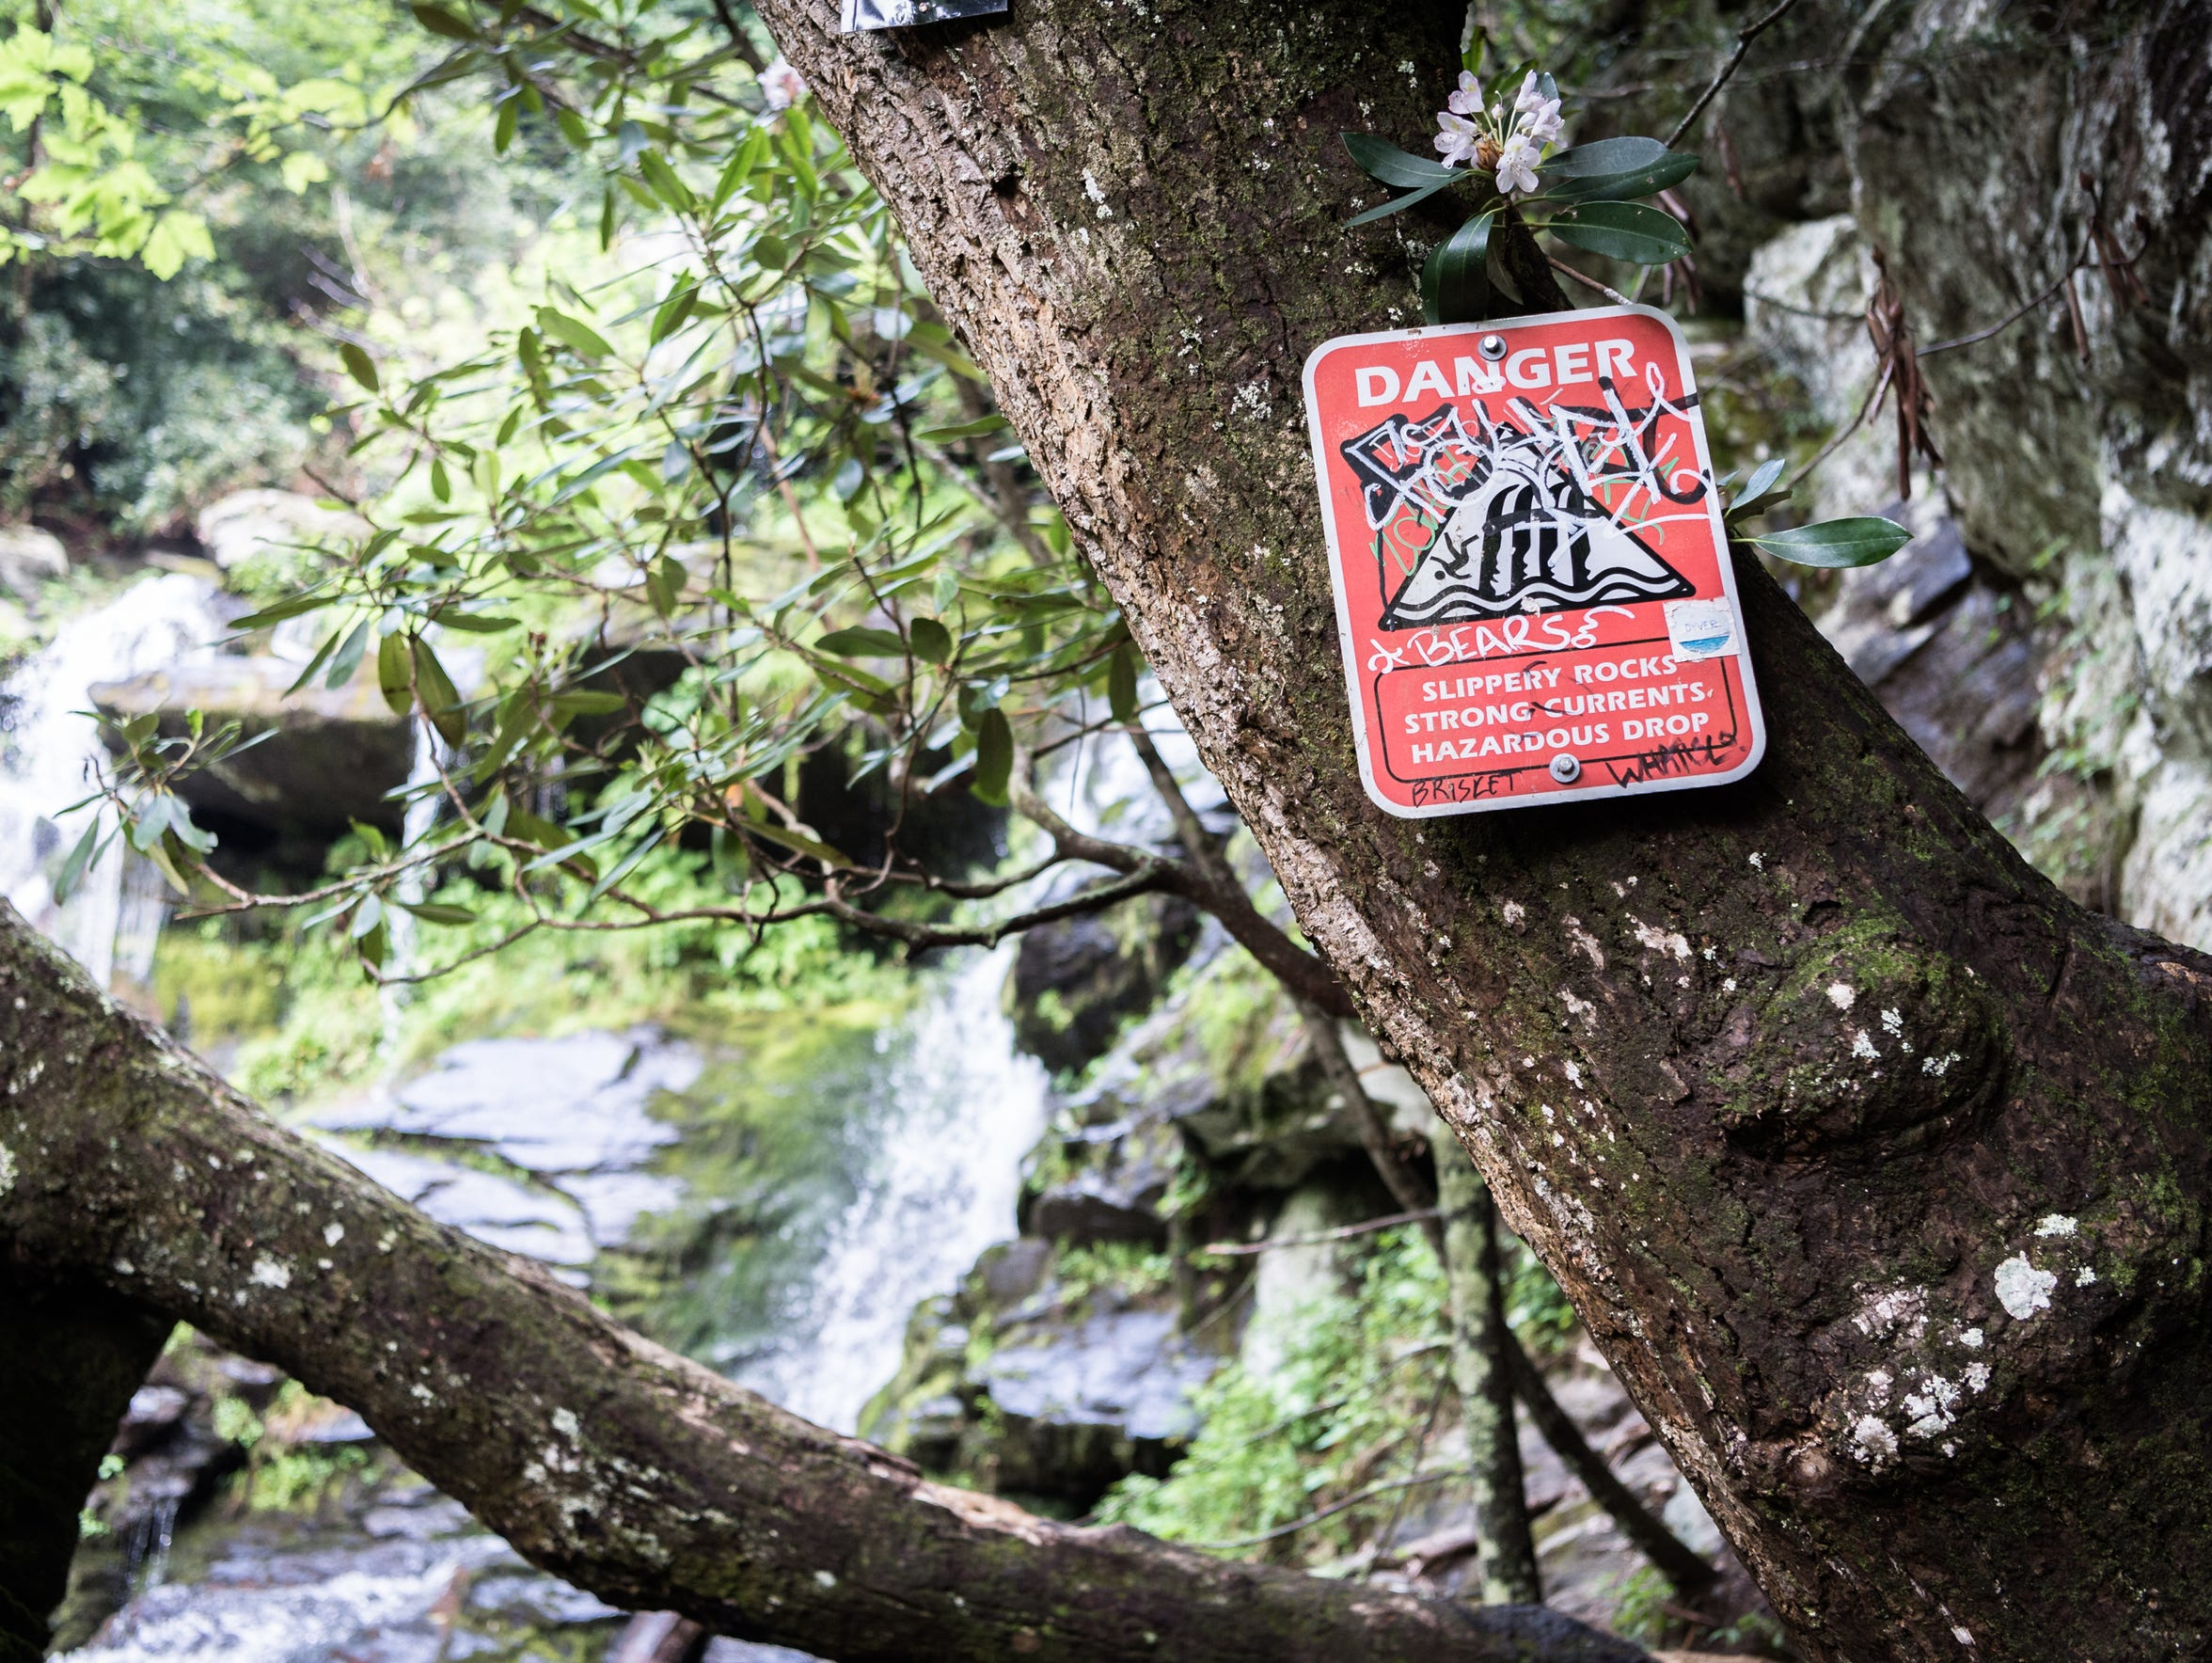 Signage warning visitors to Catabwa Falls in the Pisgah